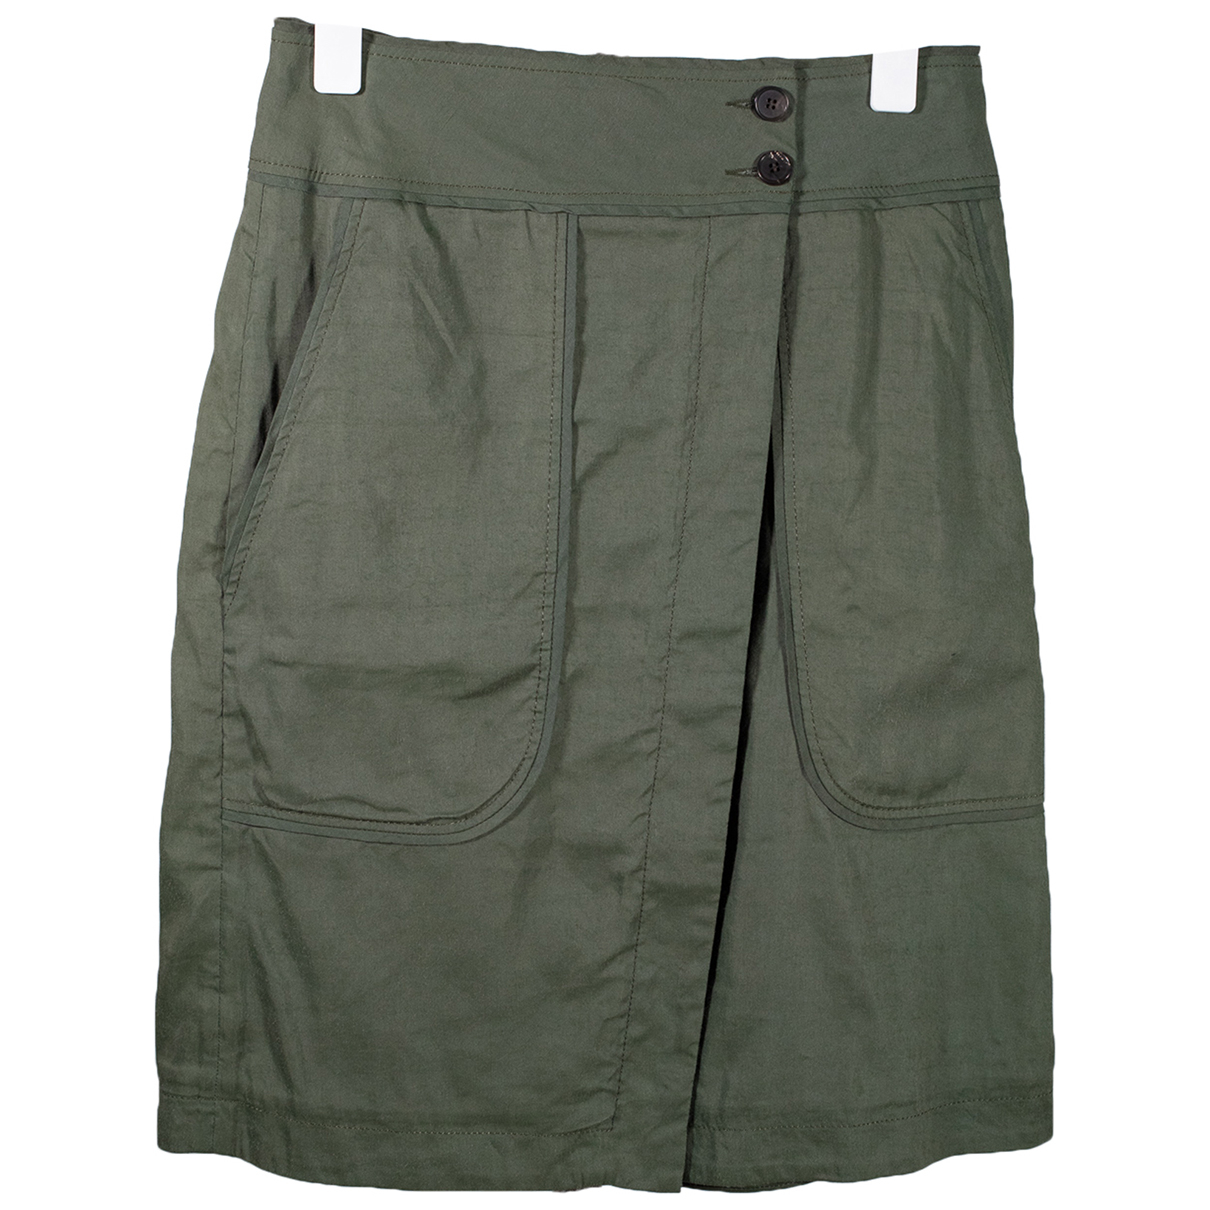 Vanessa Bruno \N Khaki Linen skirt for Women 36 FR